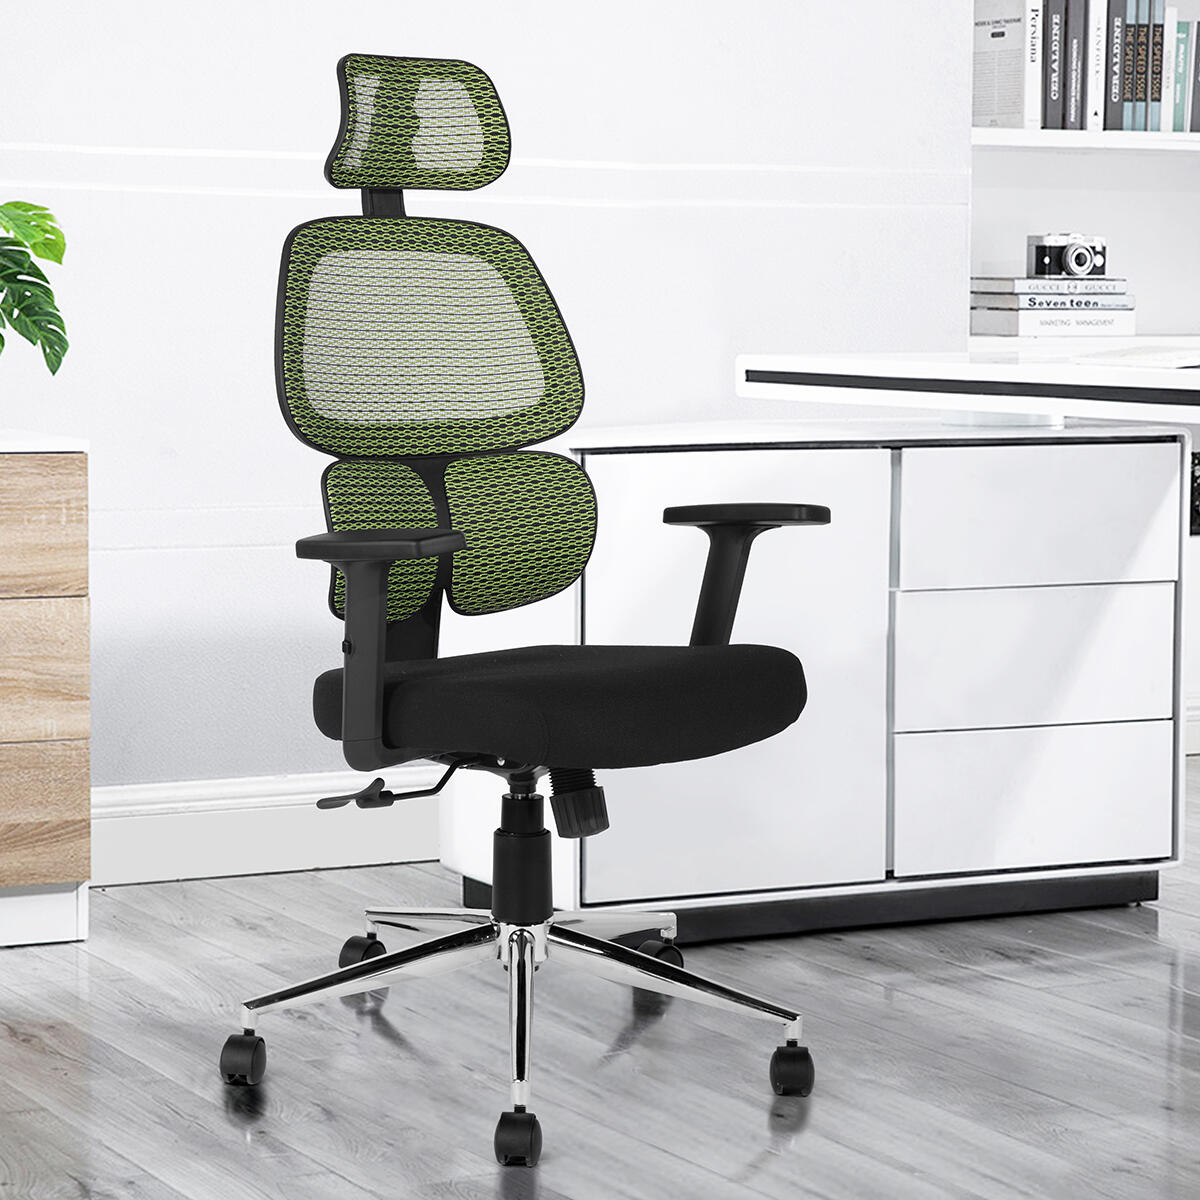 FurnitureR Tikitere Mesh Green Ergonomic Mesh Executive Office Chair